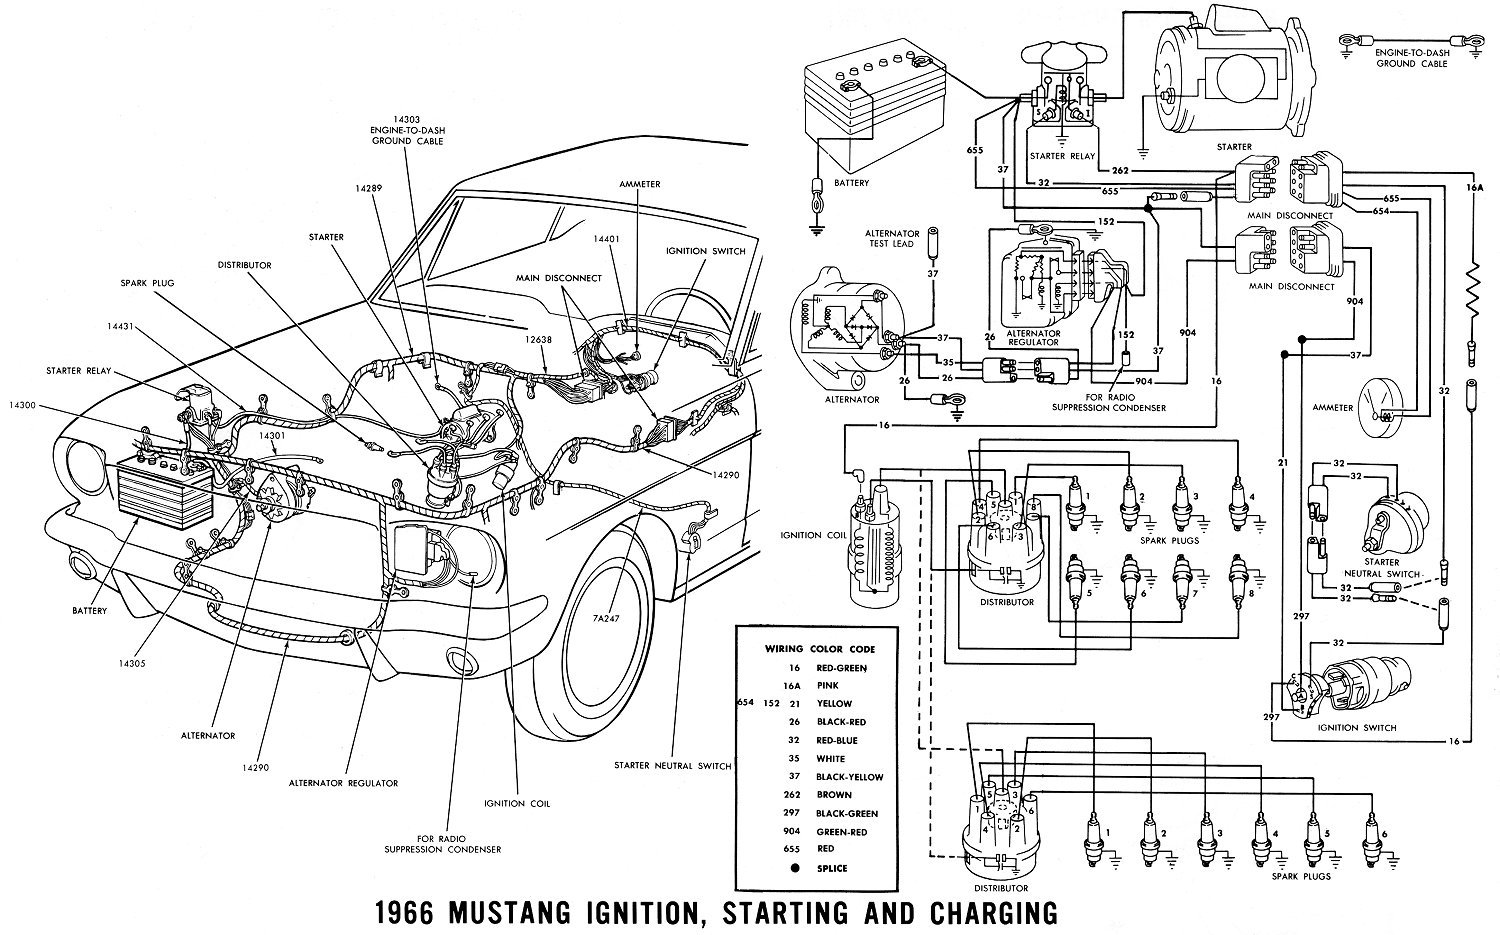 Ignition Switch Schematic on 1998 Mustang Gt Spark Plug Wire Diagram